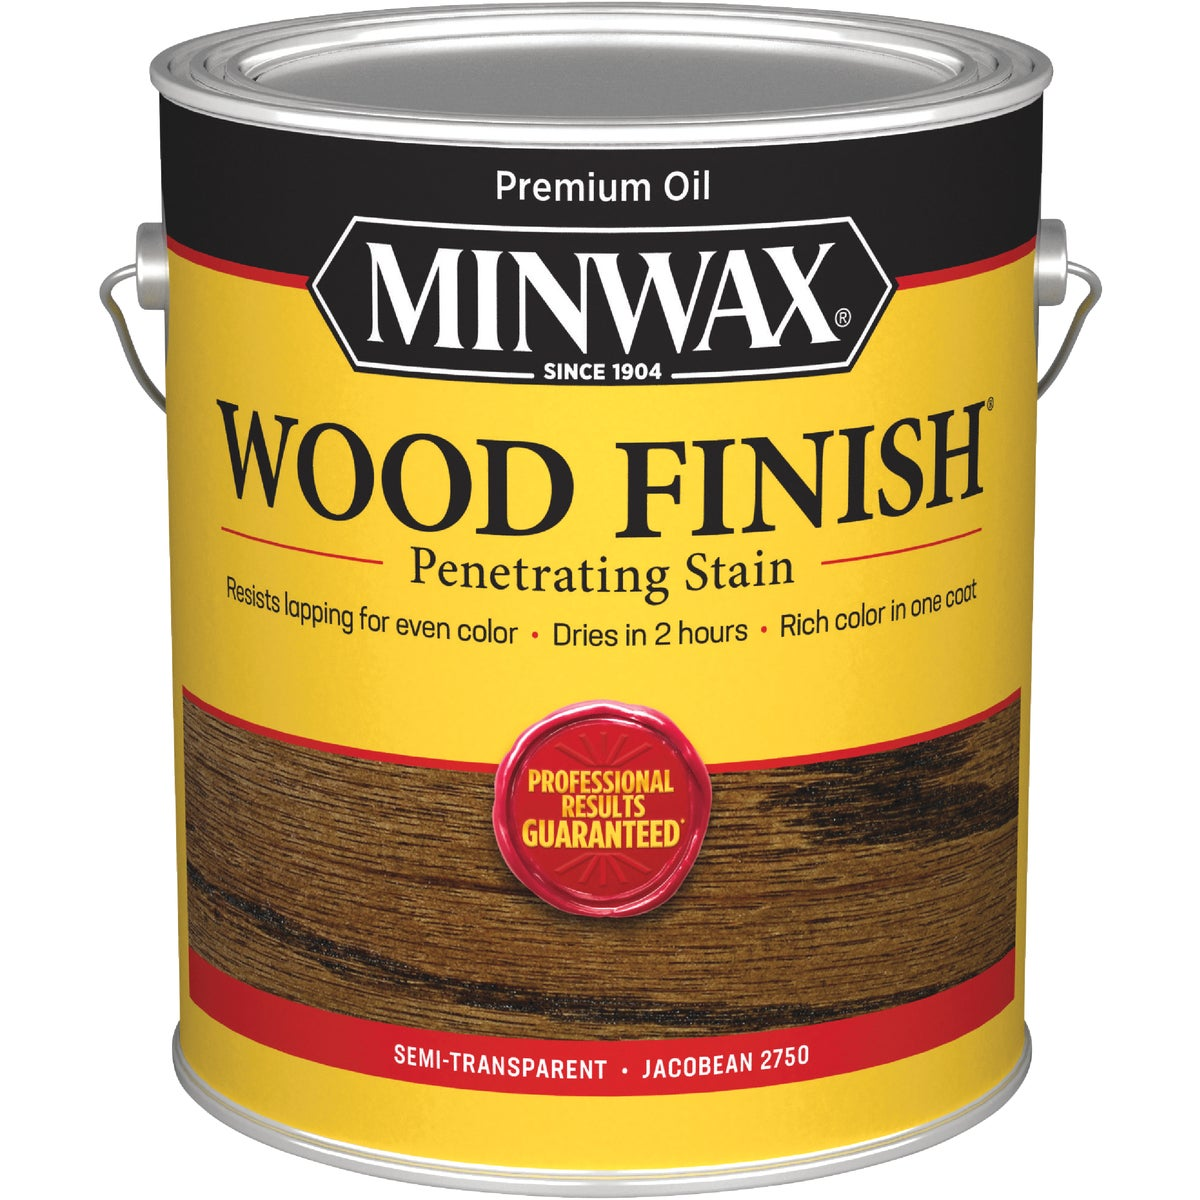 JACOBEAN WOOD STAIN - 71014 by Minwax Company